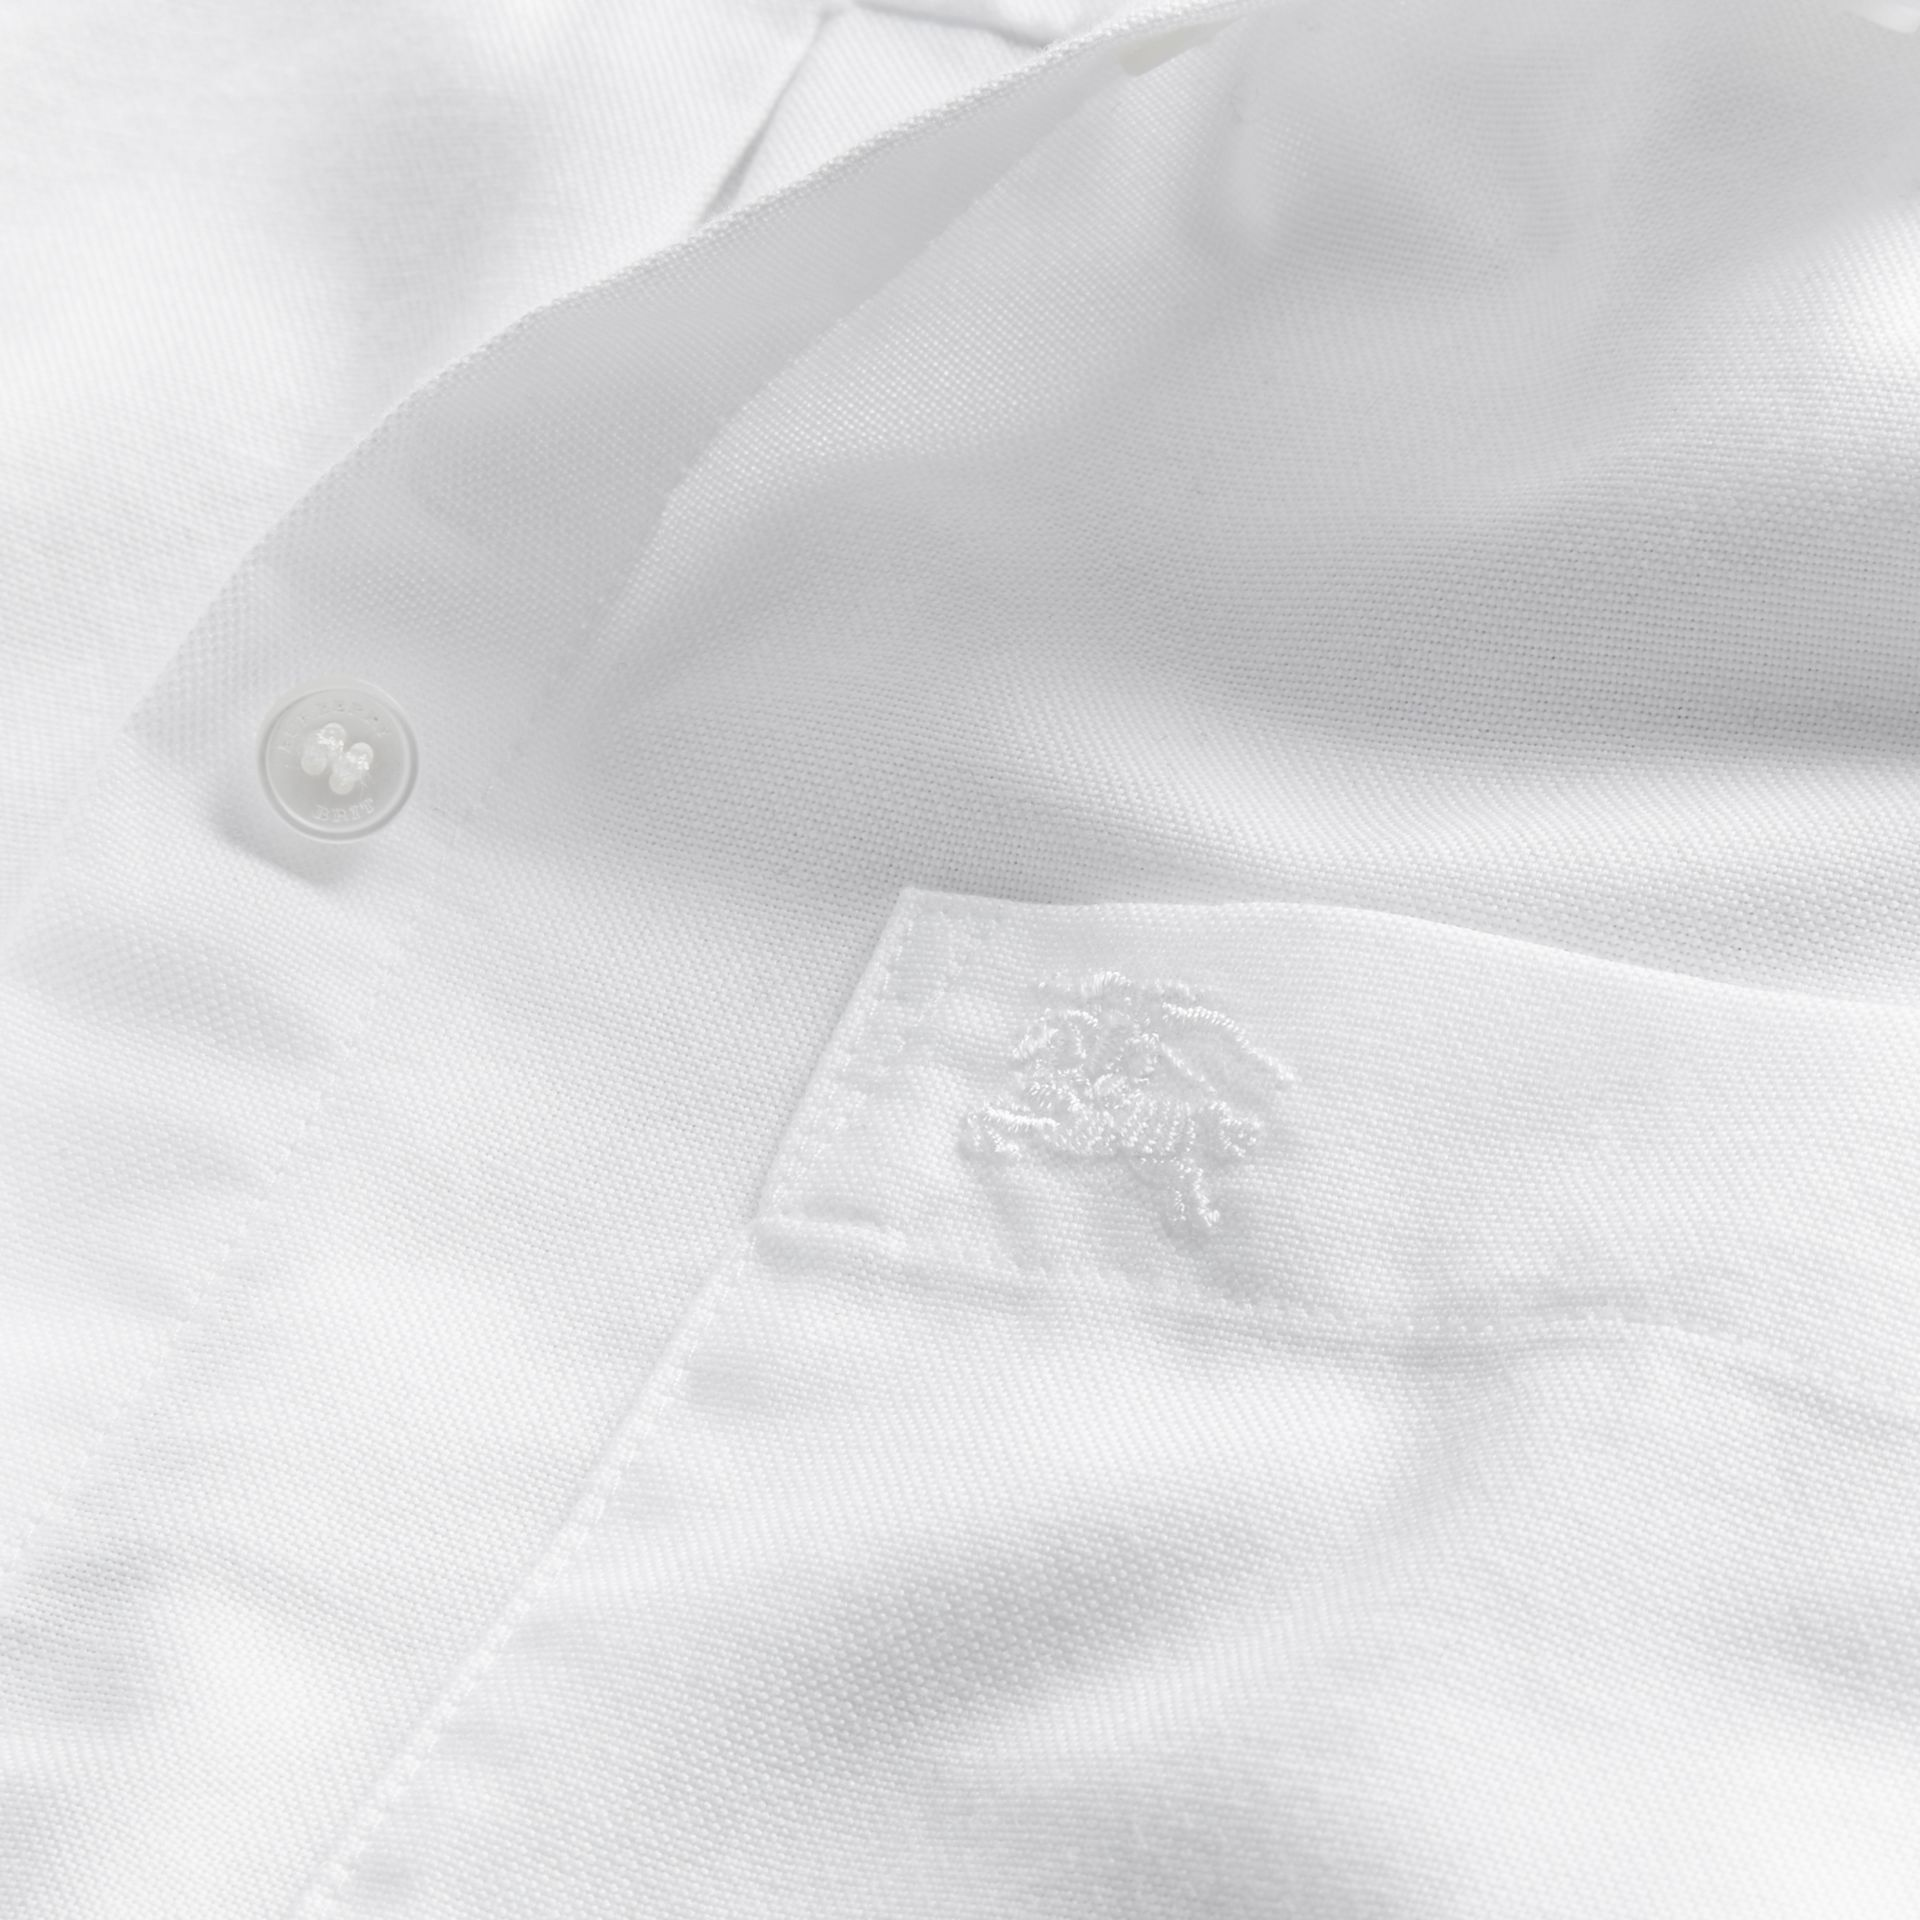 Optic white Check Detail Cotton Shirt Optic White - gallery image 2